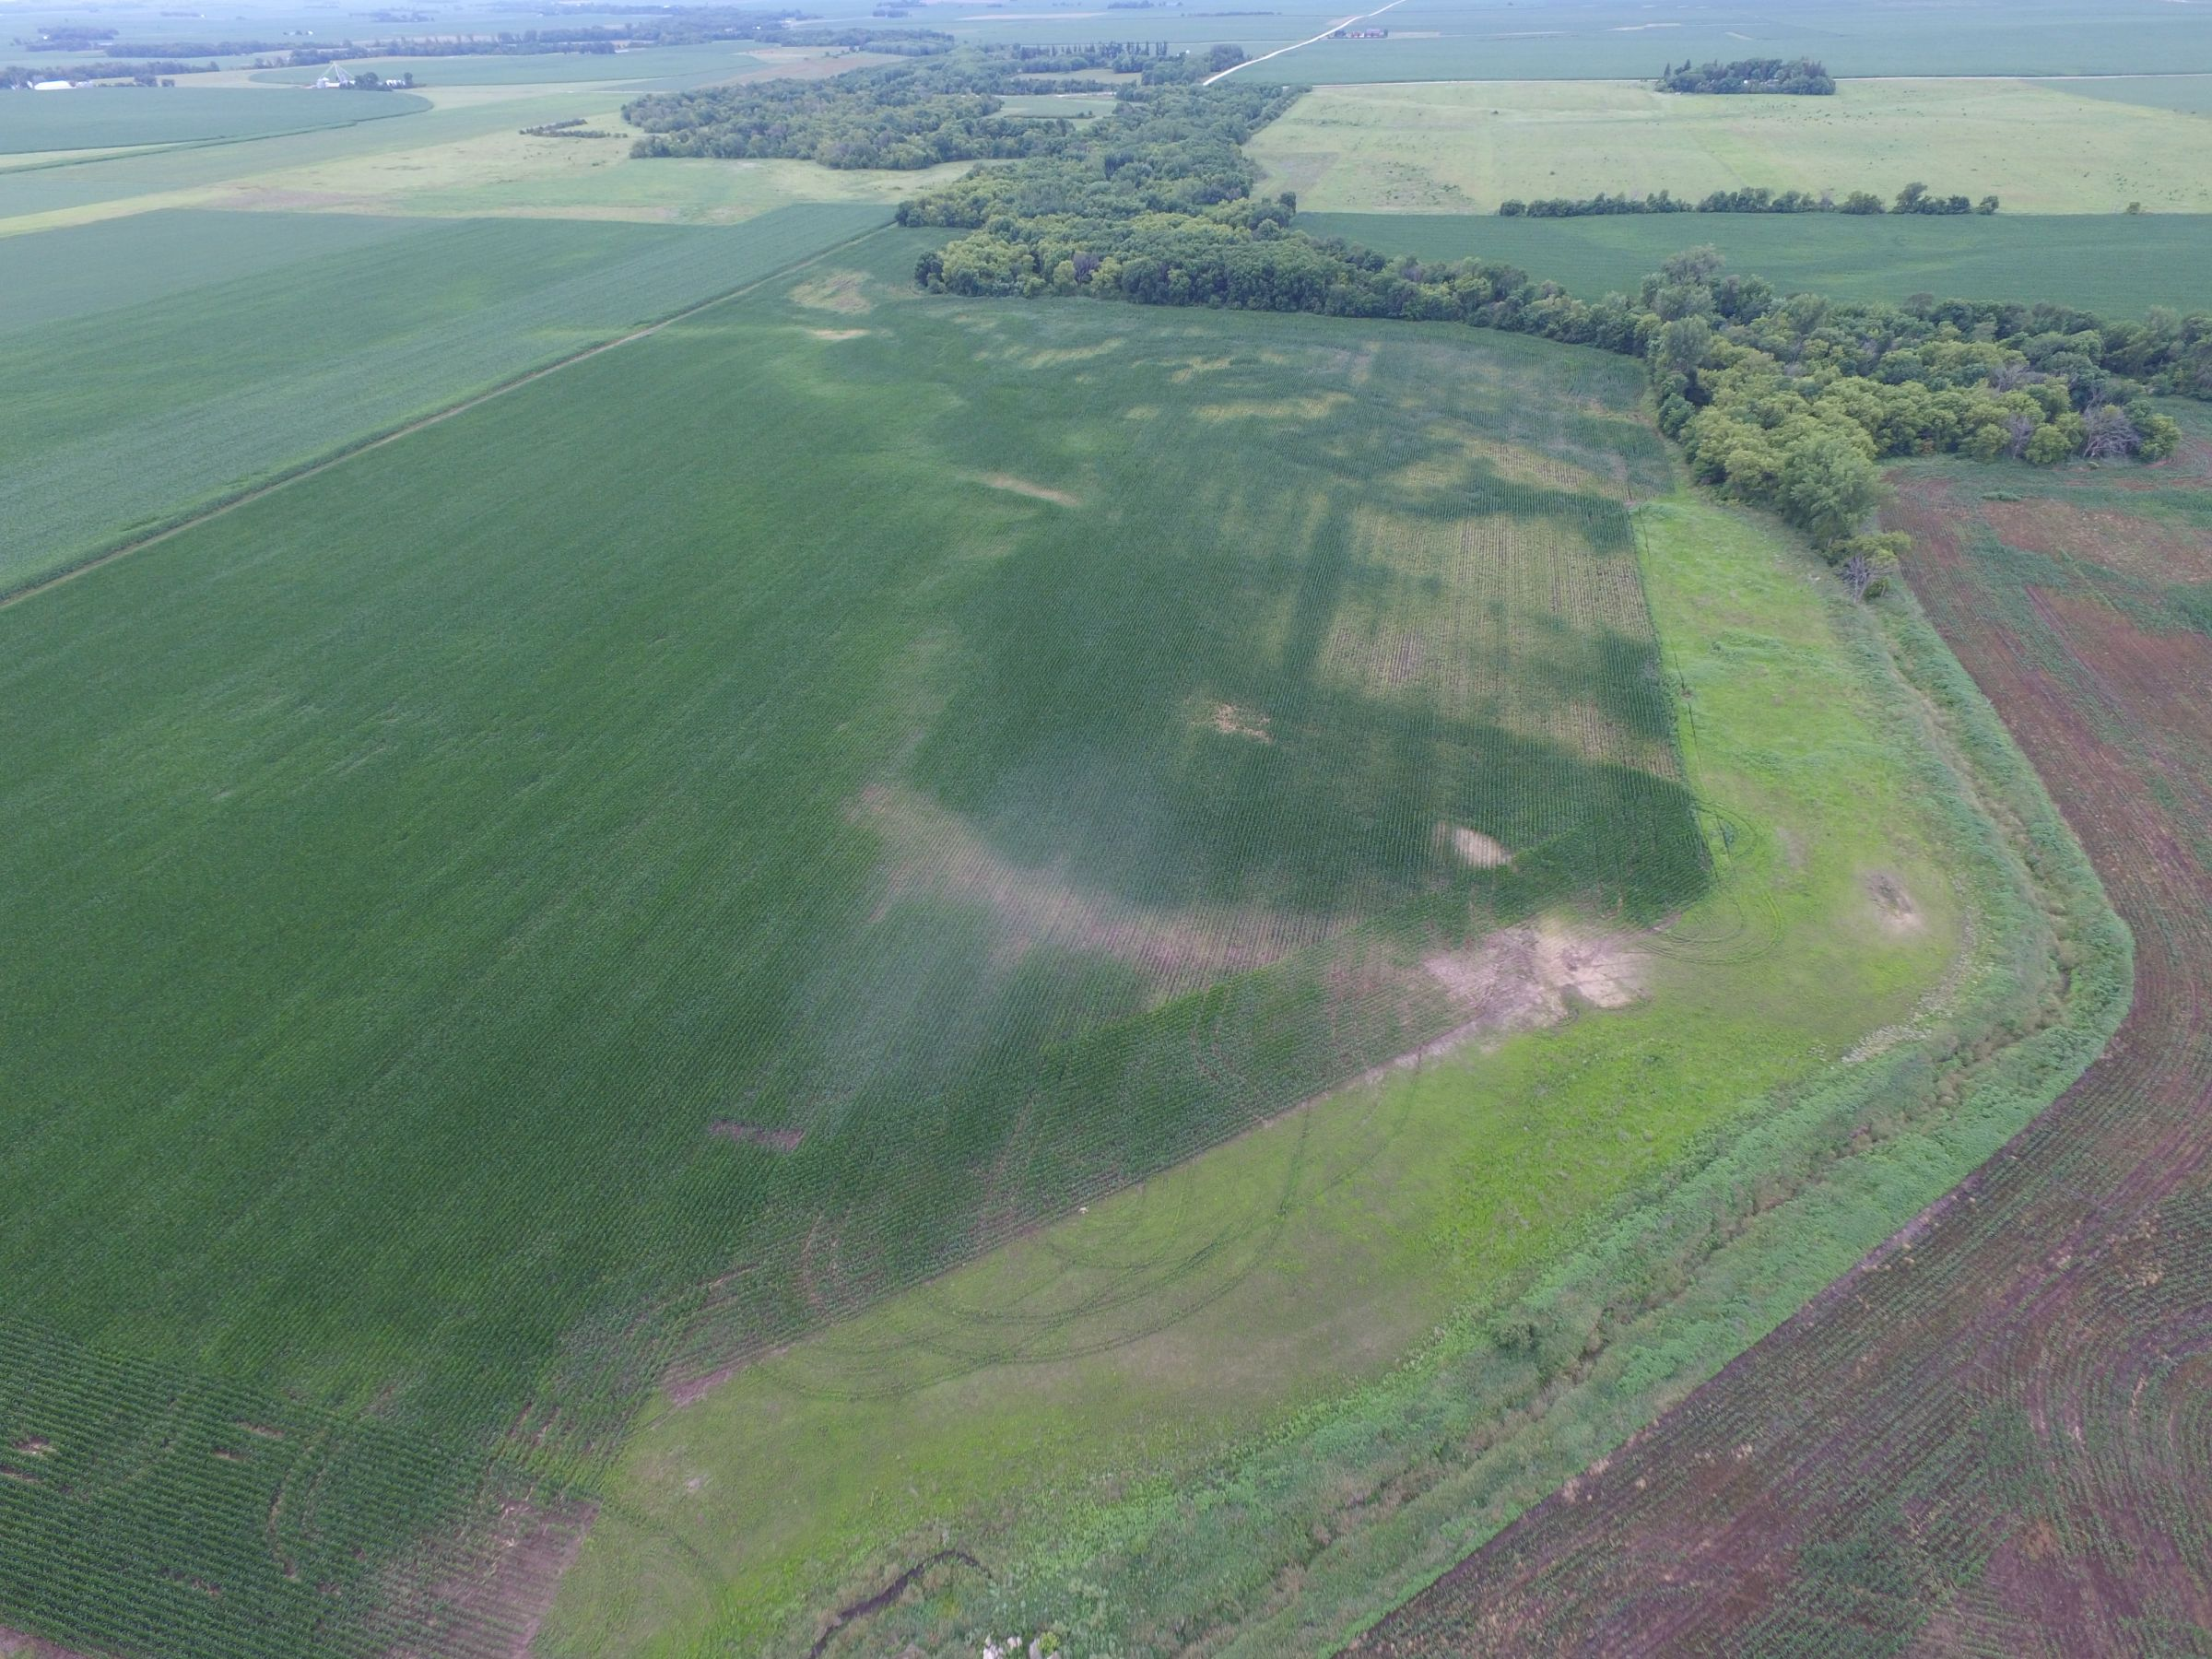 auctions-land-floyd-county-iowa-112-acres-listing-number-15630-6-2021-07-13-192249.JPG